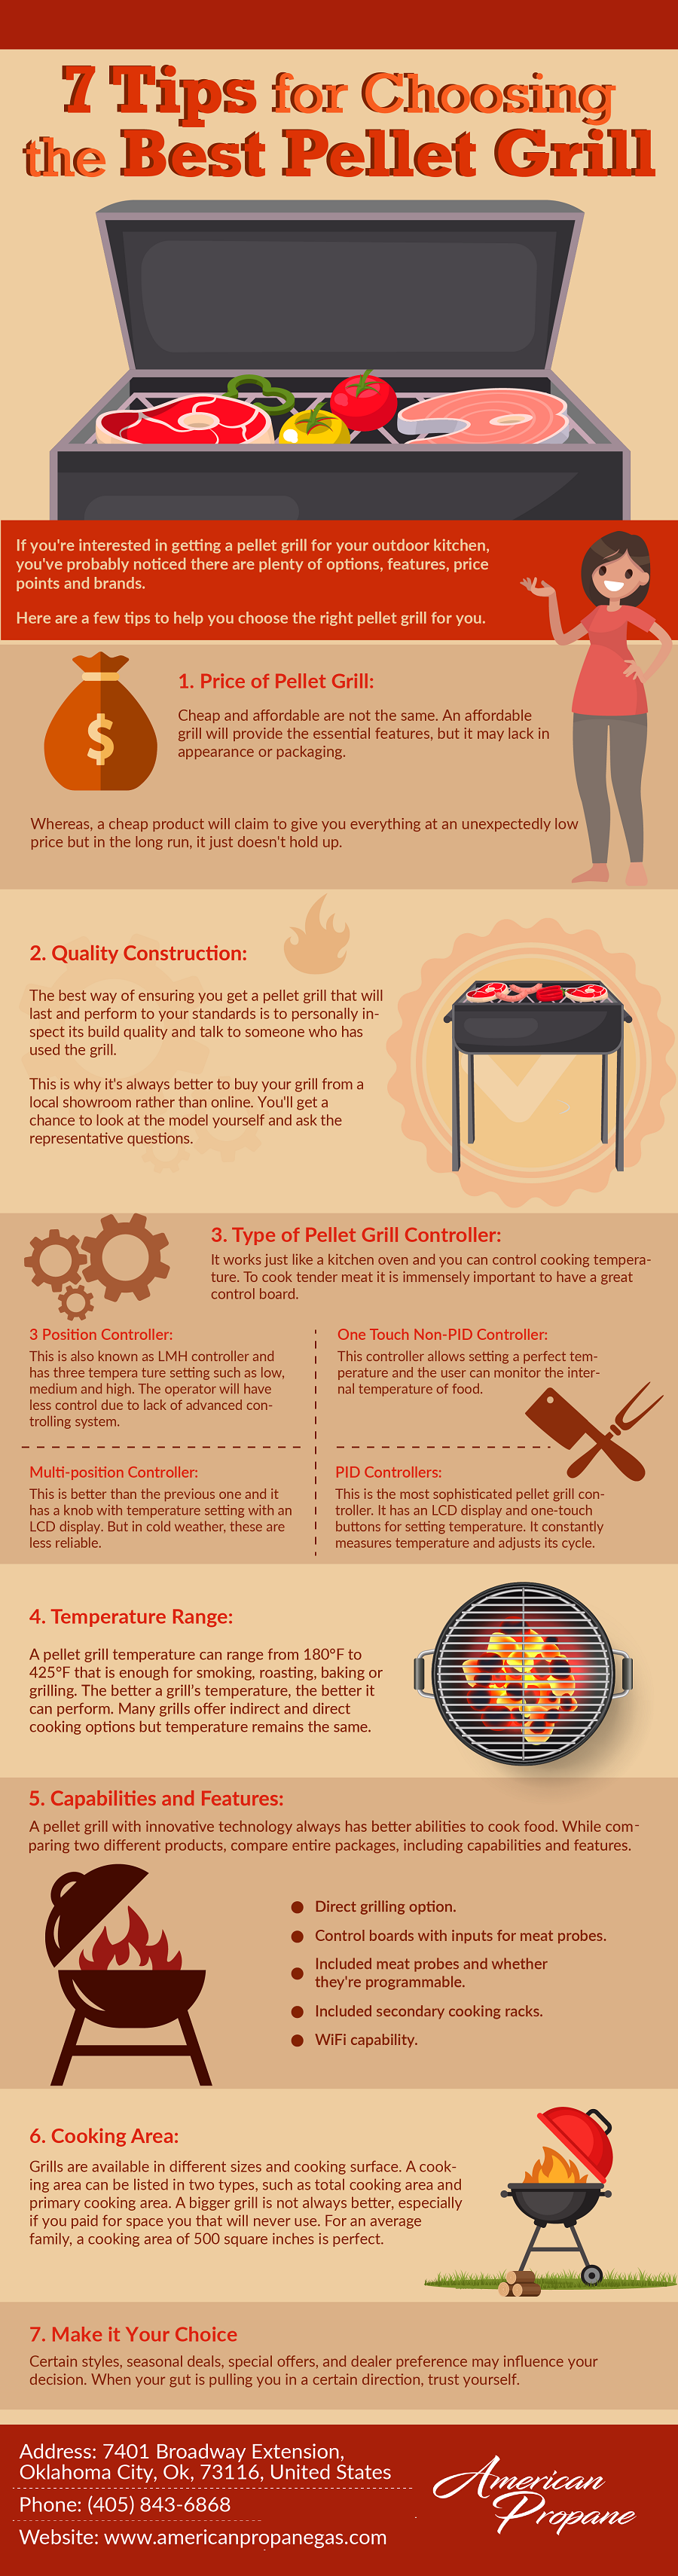 7 Tips for Choosing the Best Pellet Grill.png